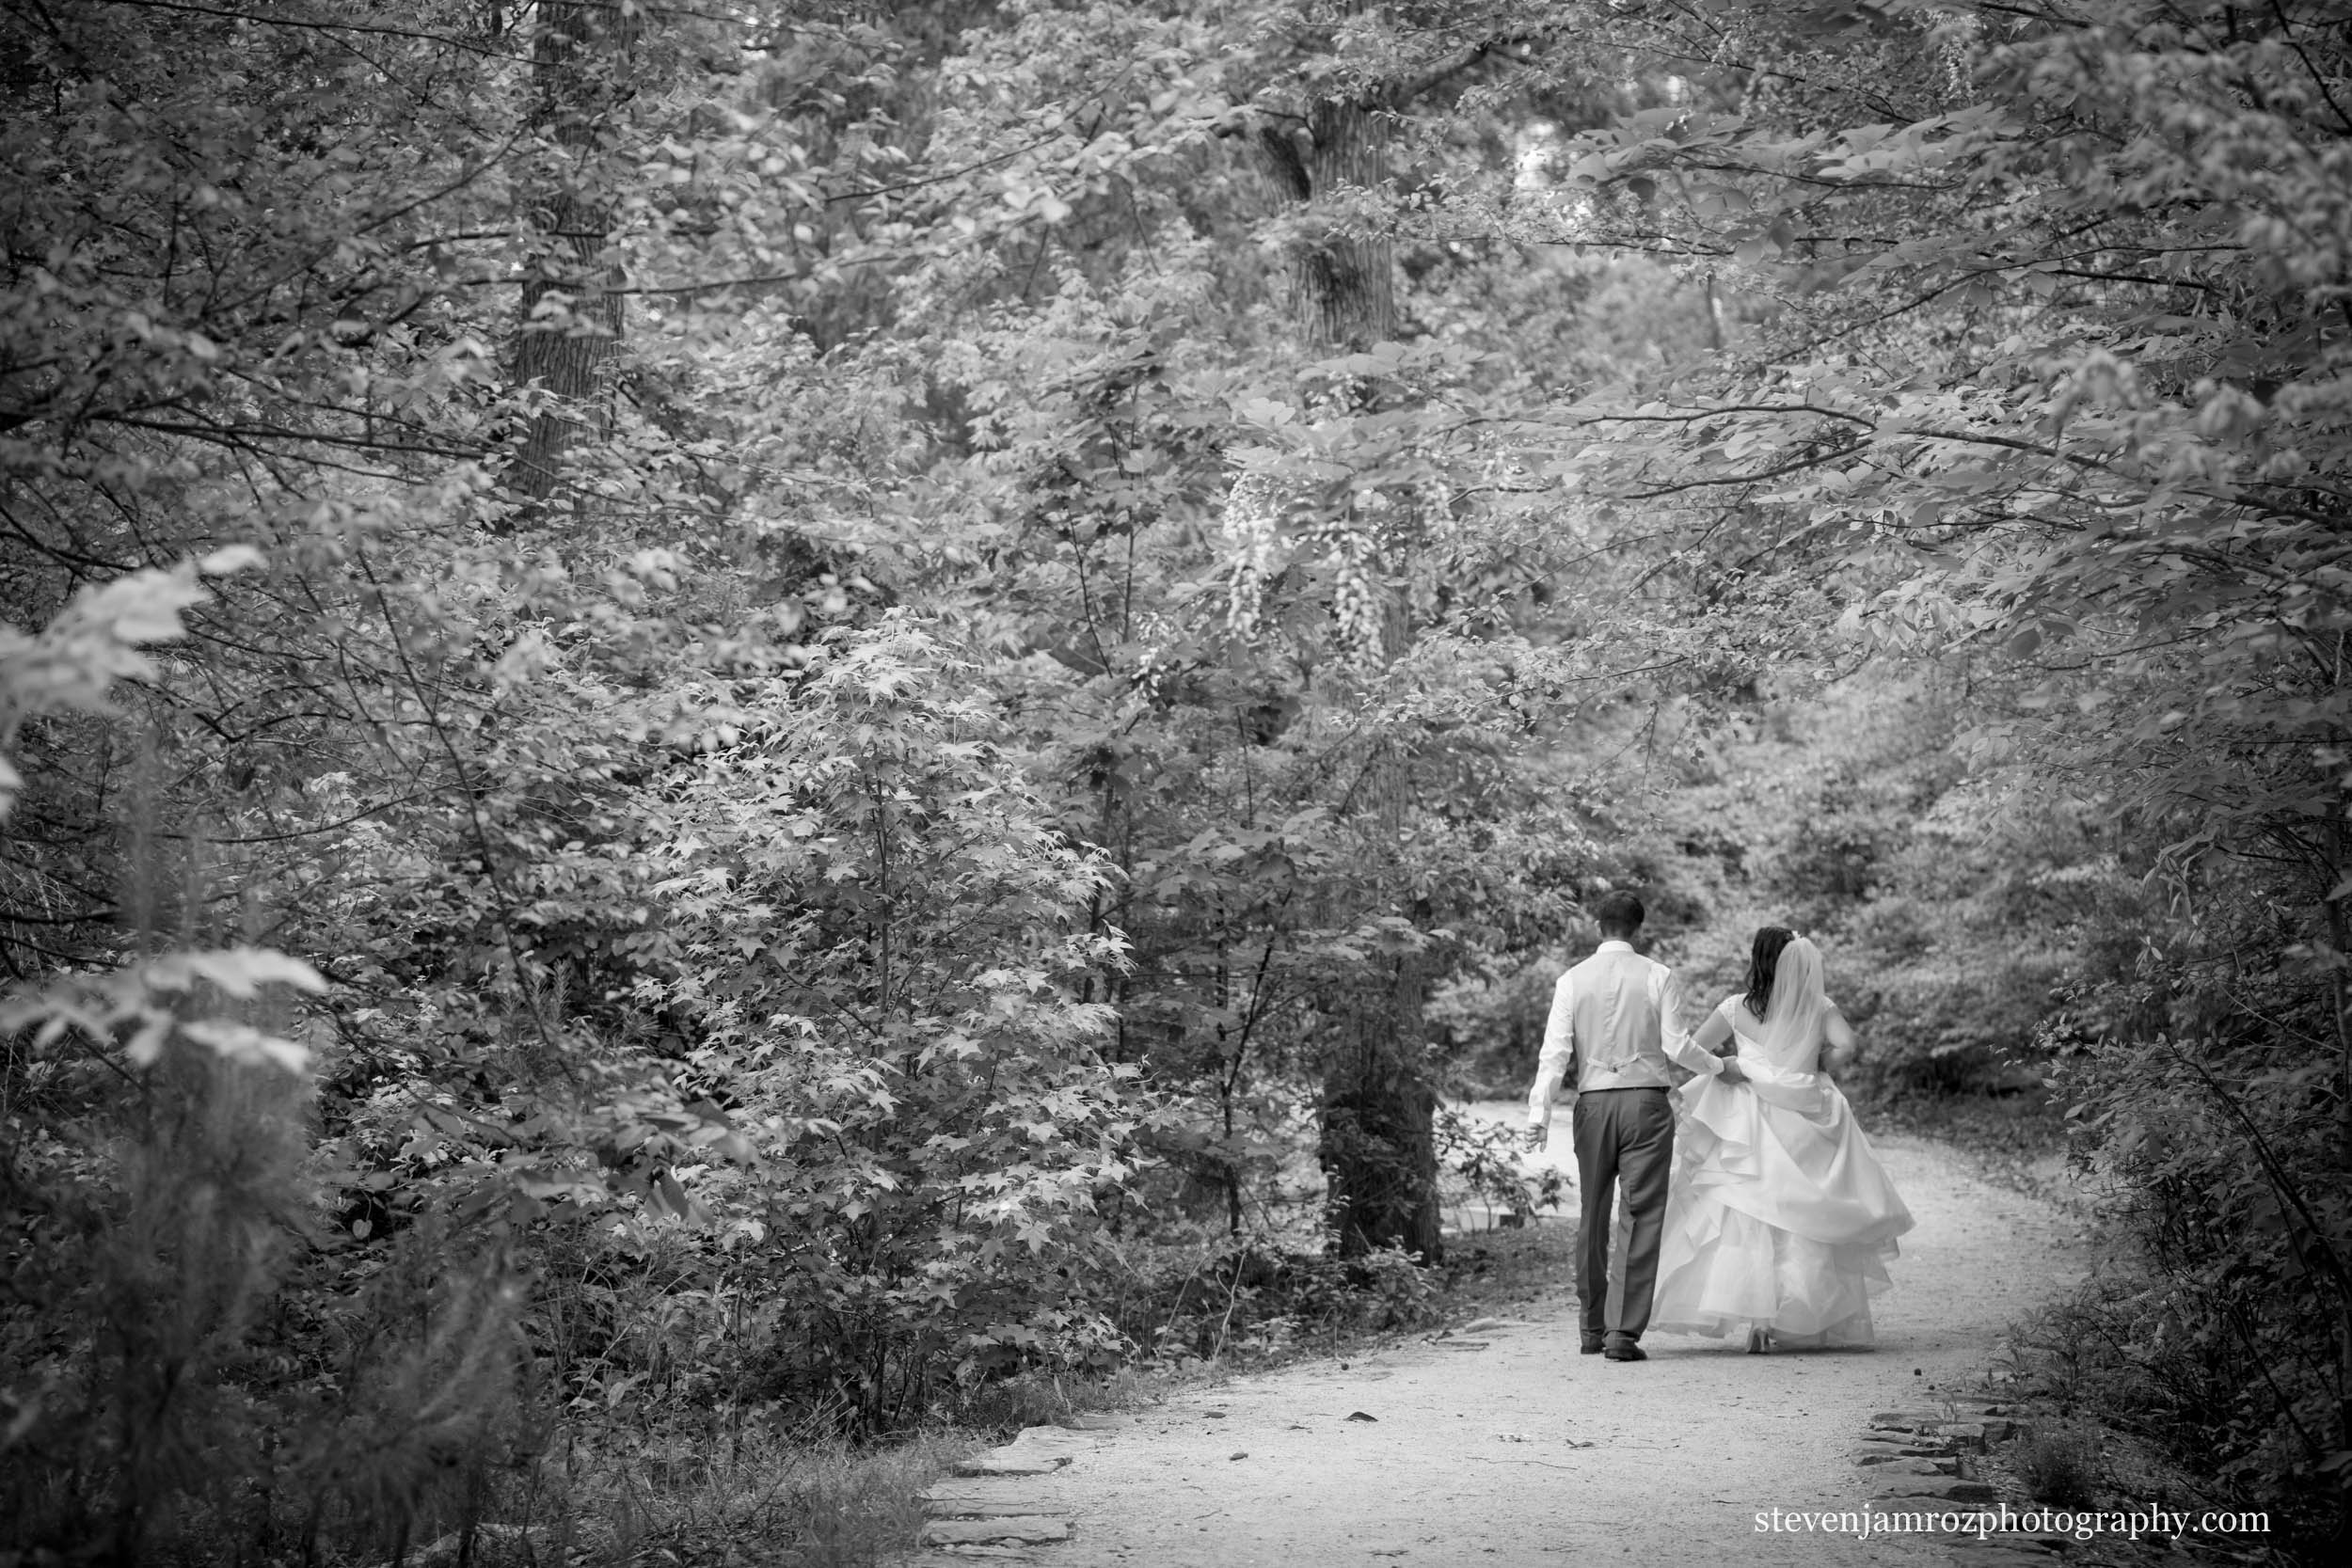 yates-mill-pond-wedding-raleigh-steven-jamroz-photography-0411.jpg